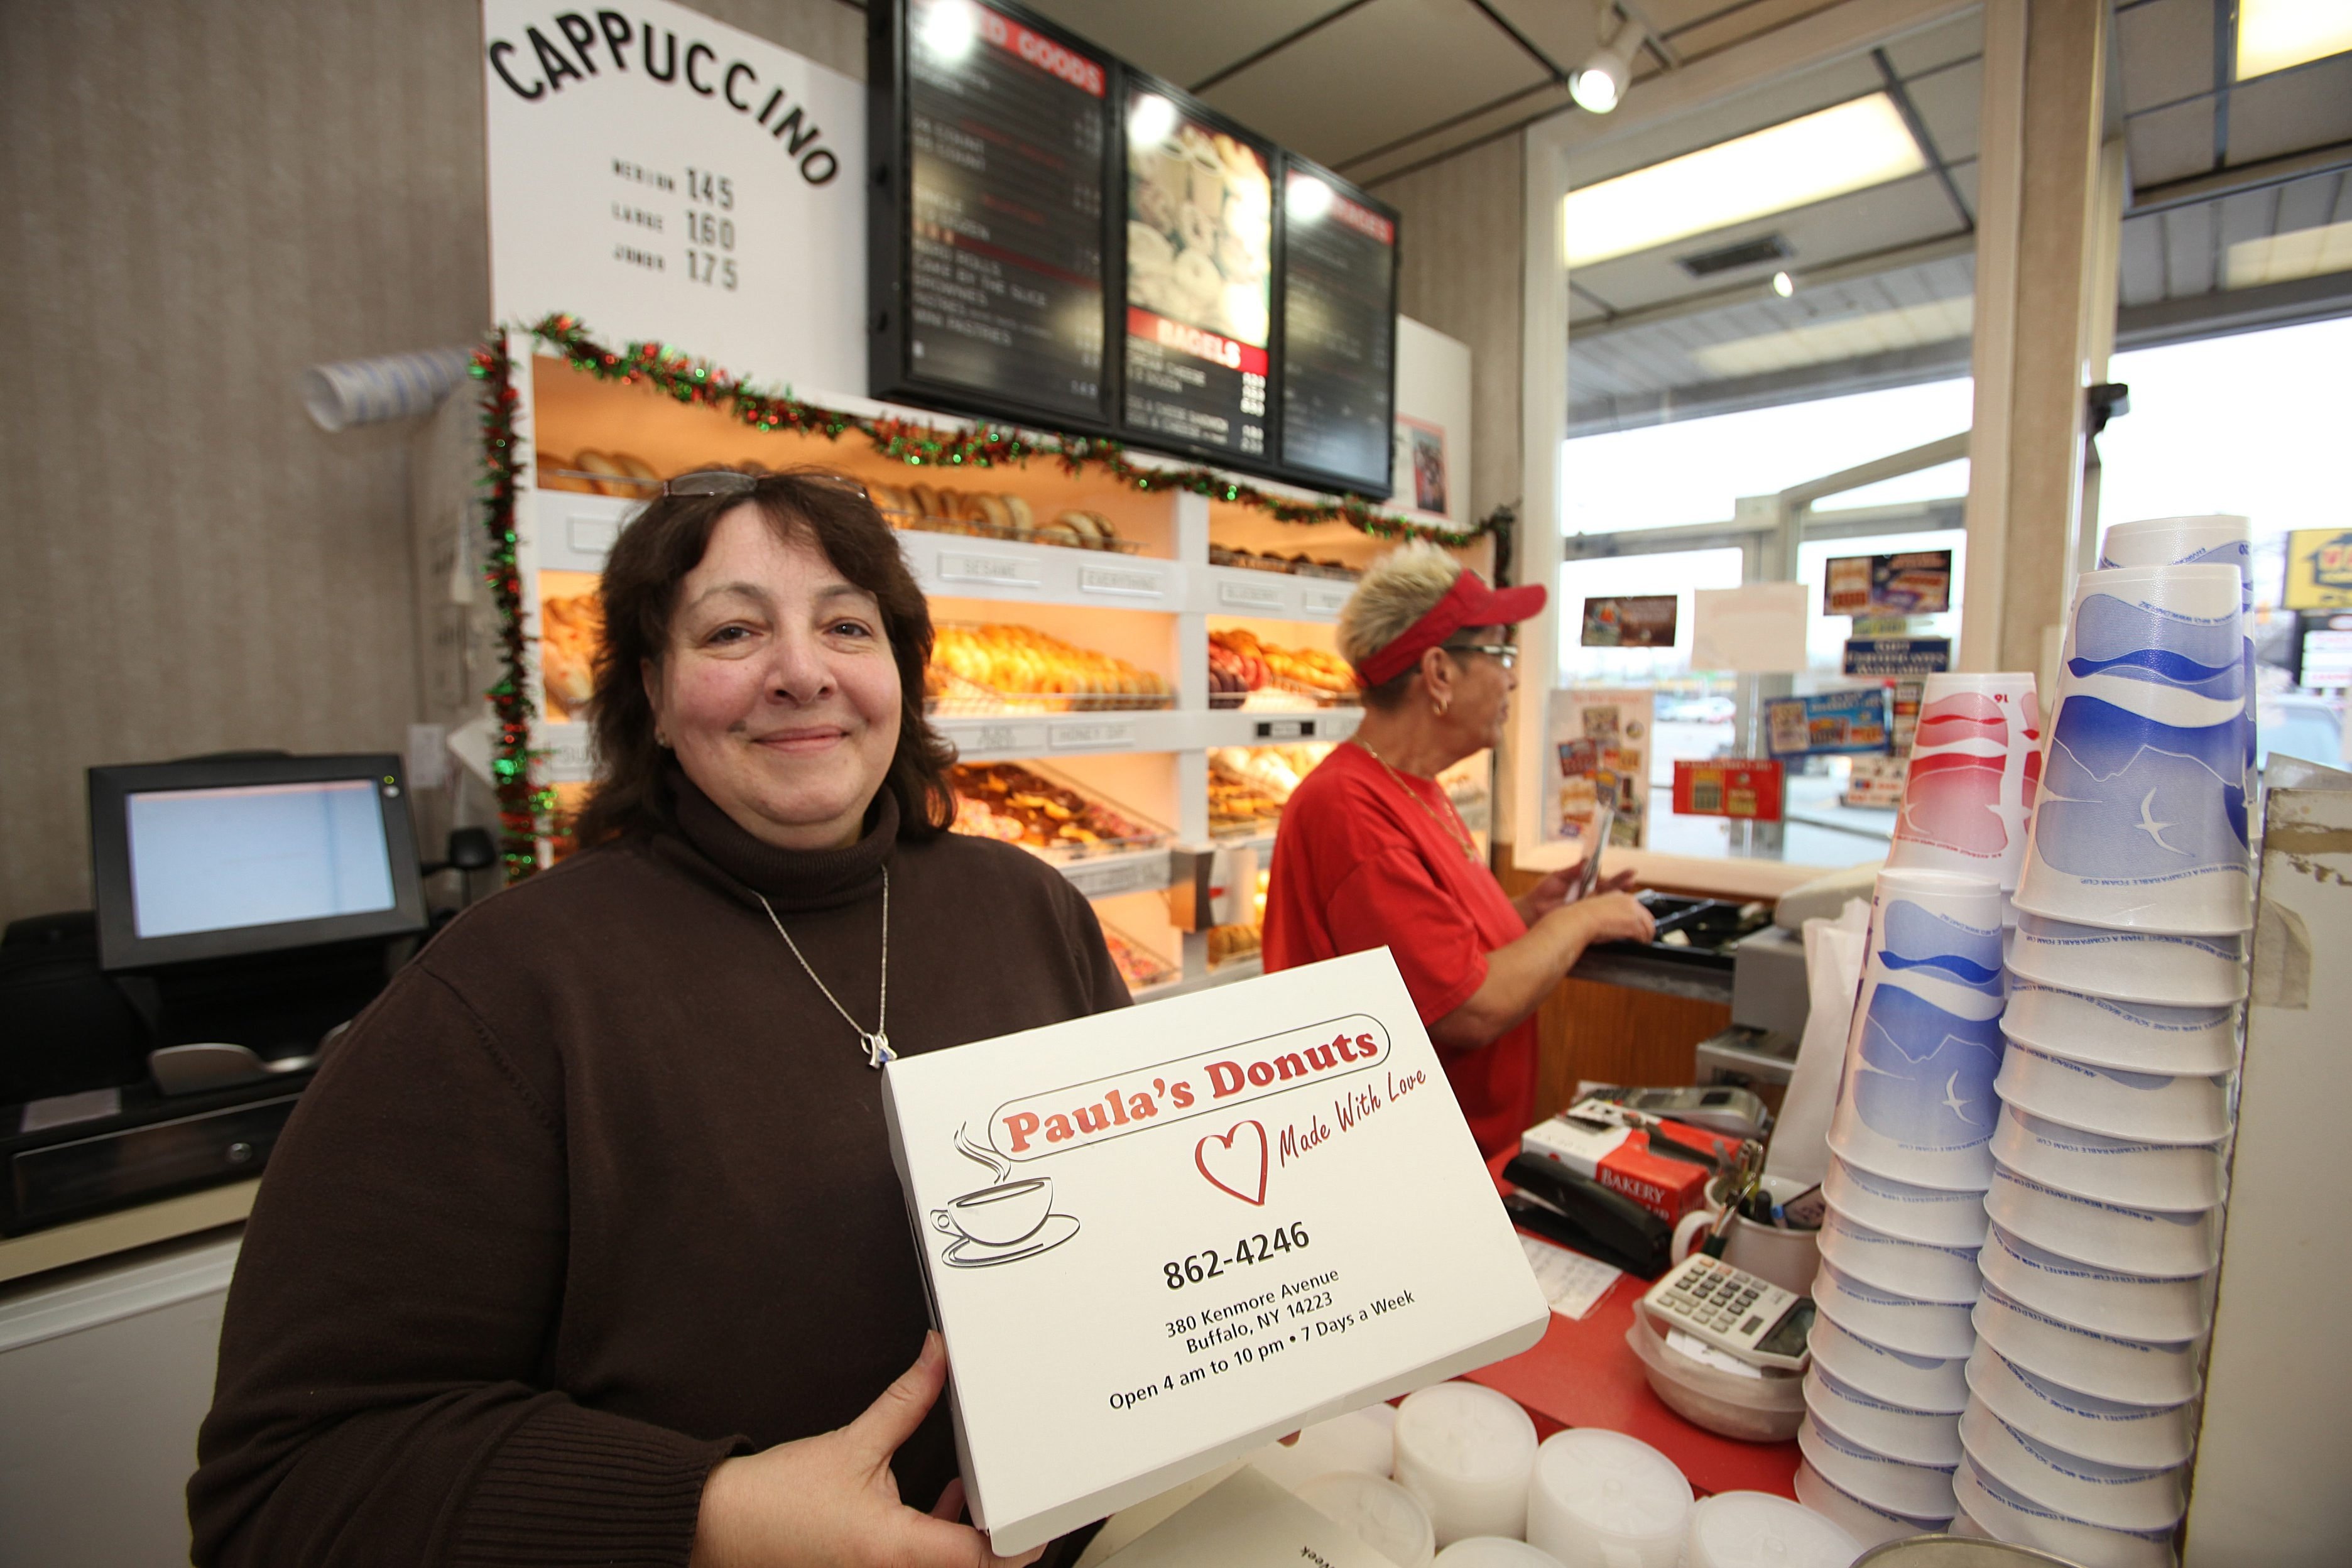 Paula Huber spent 17 years running her doughnut shop, Paula's Donuts, out of this Kenmore Avenue storefront. Soon, she'll add a West Seneca location.